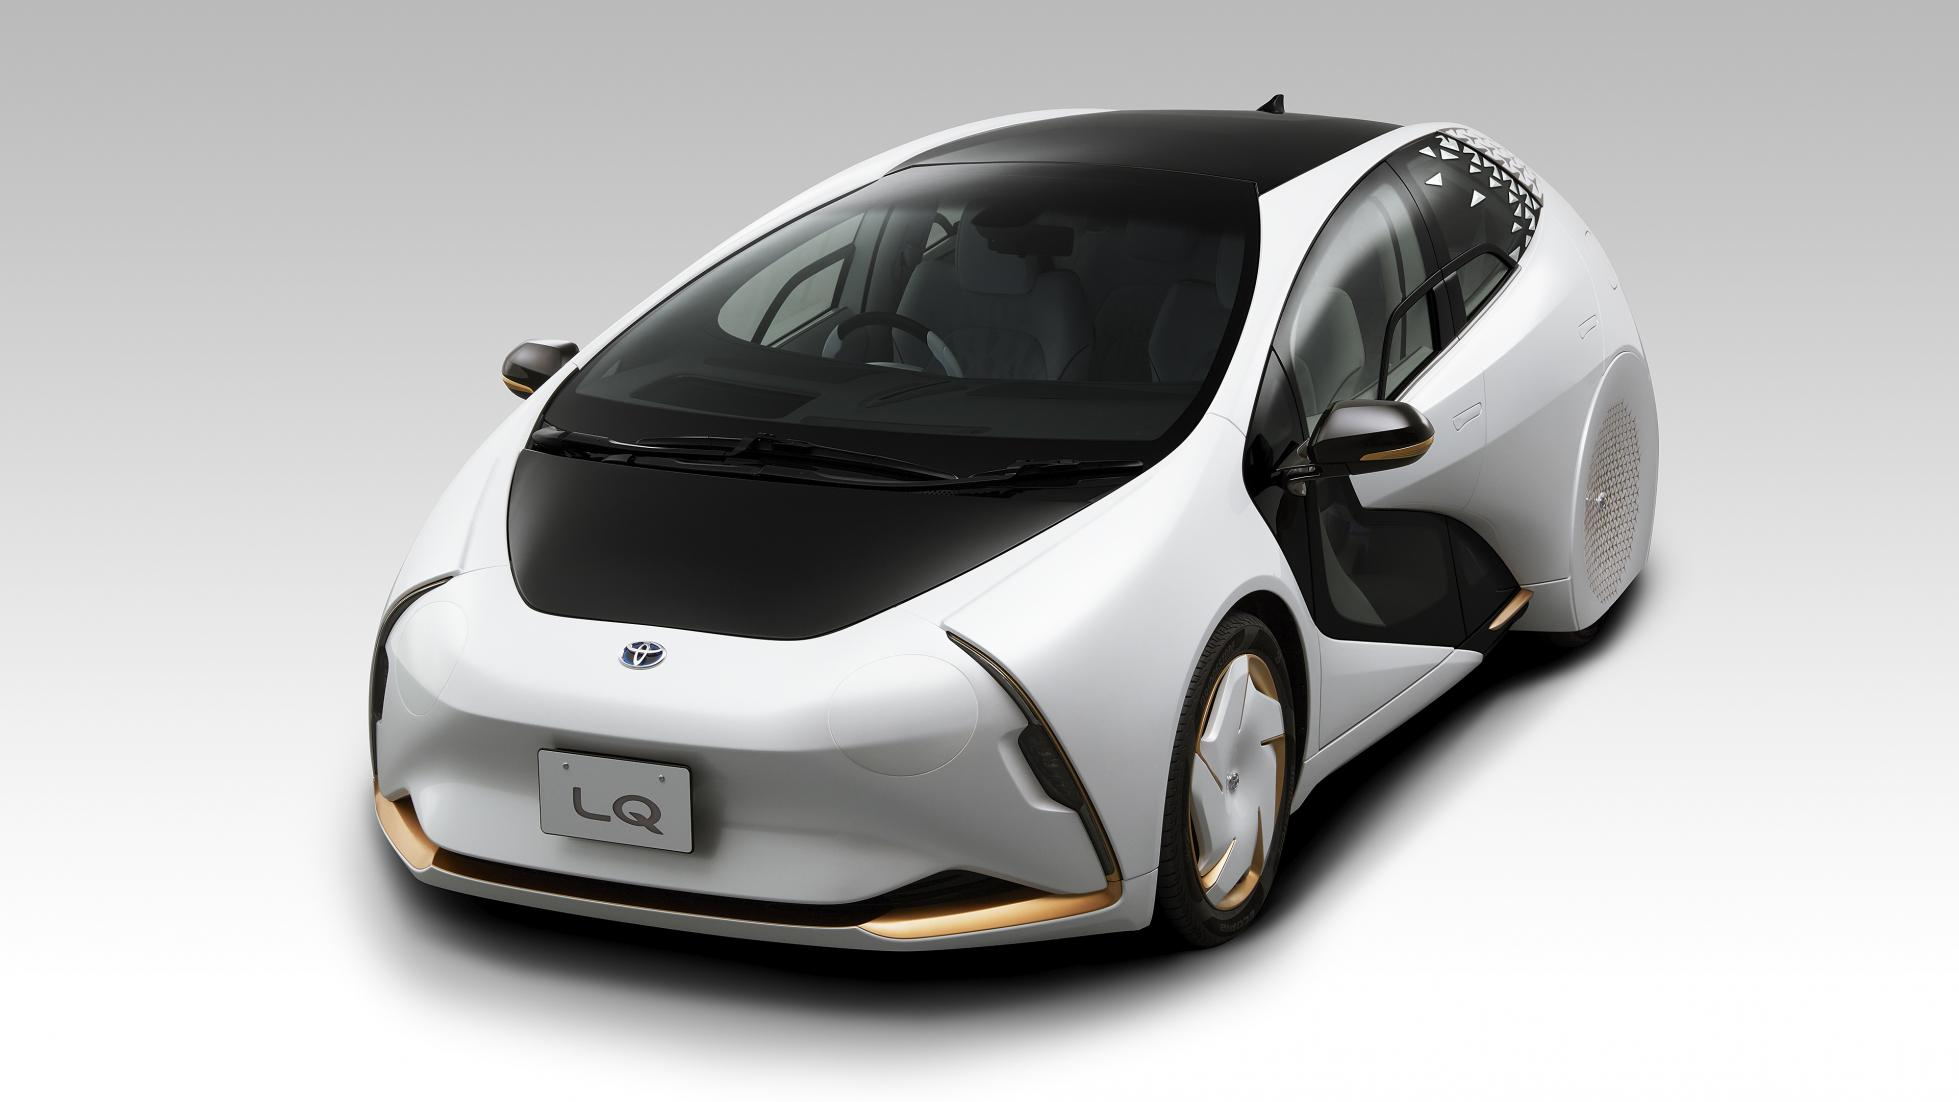 Toyota's LQ Concept wants to get to know you